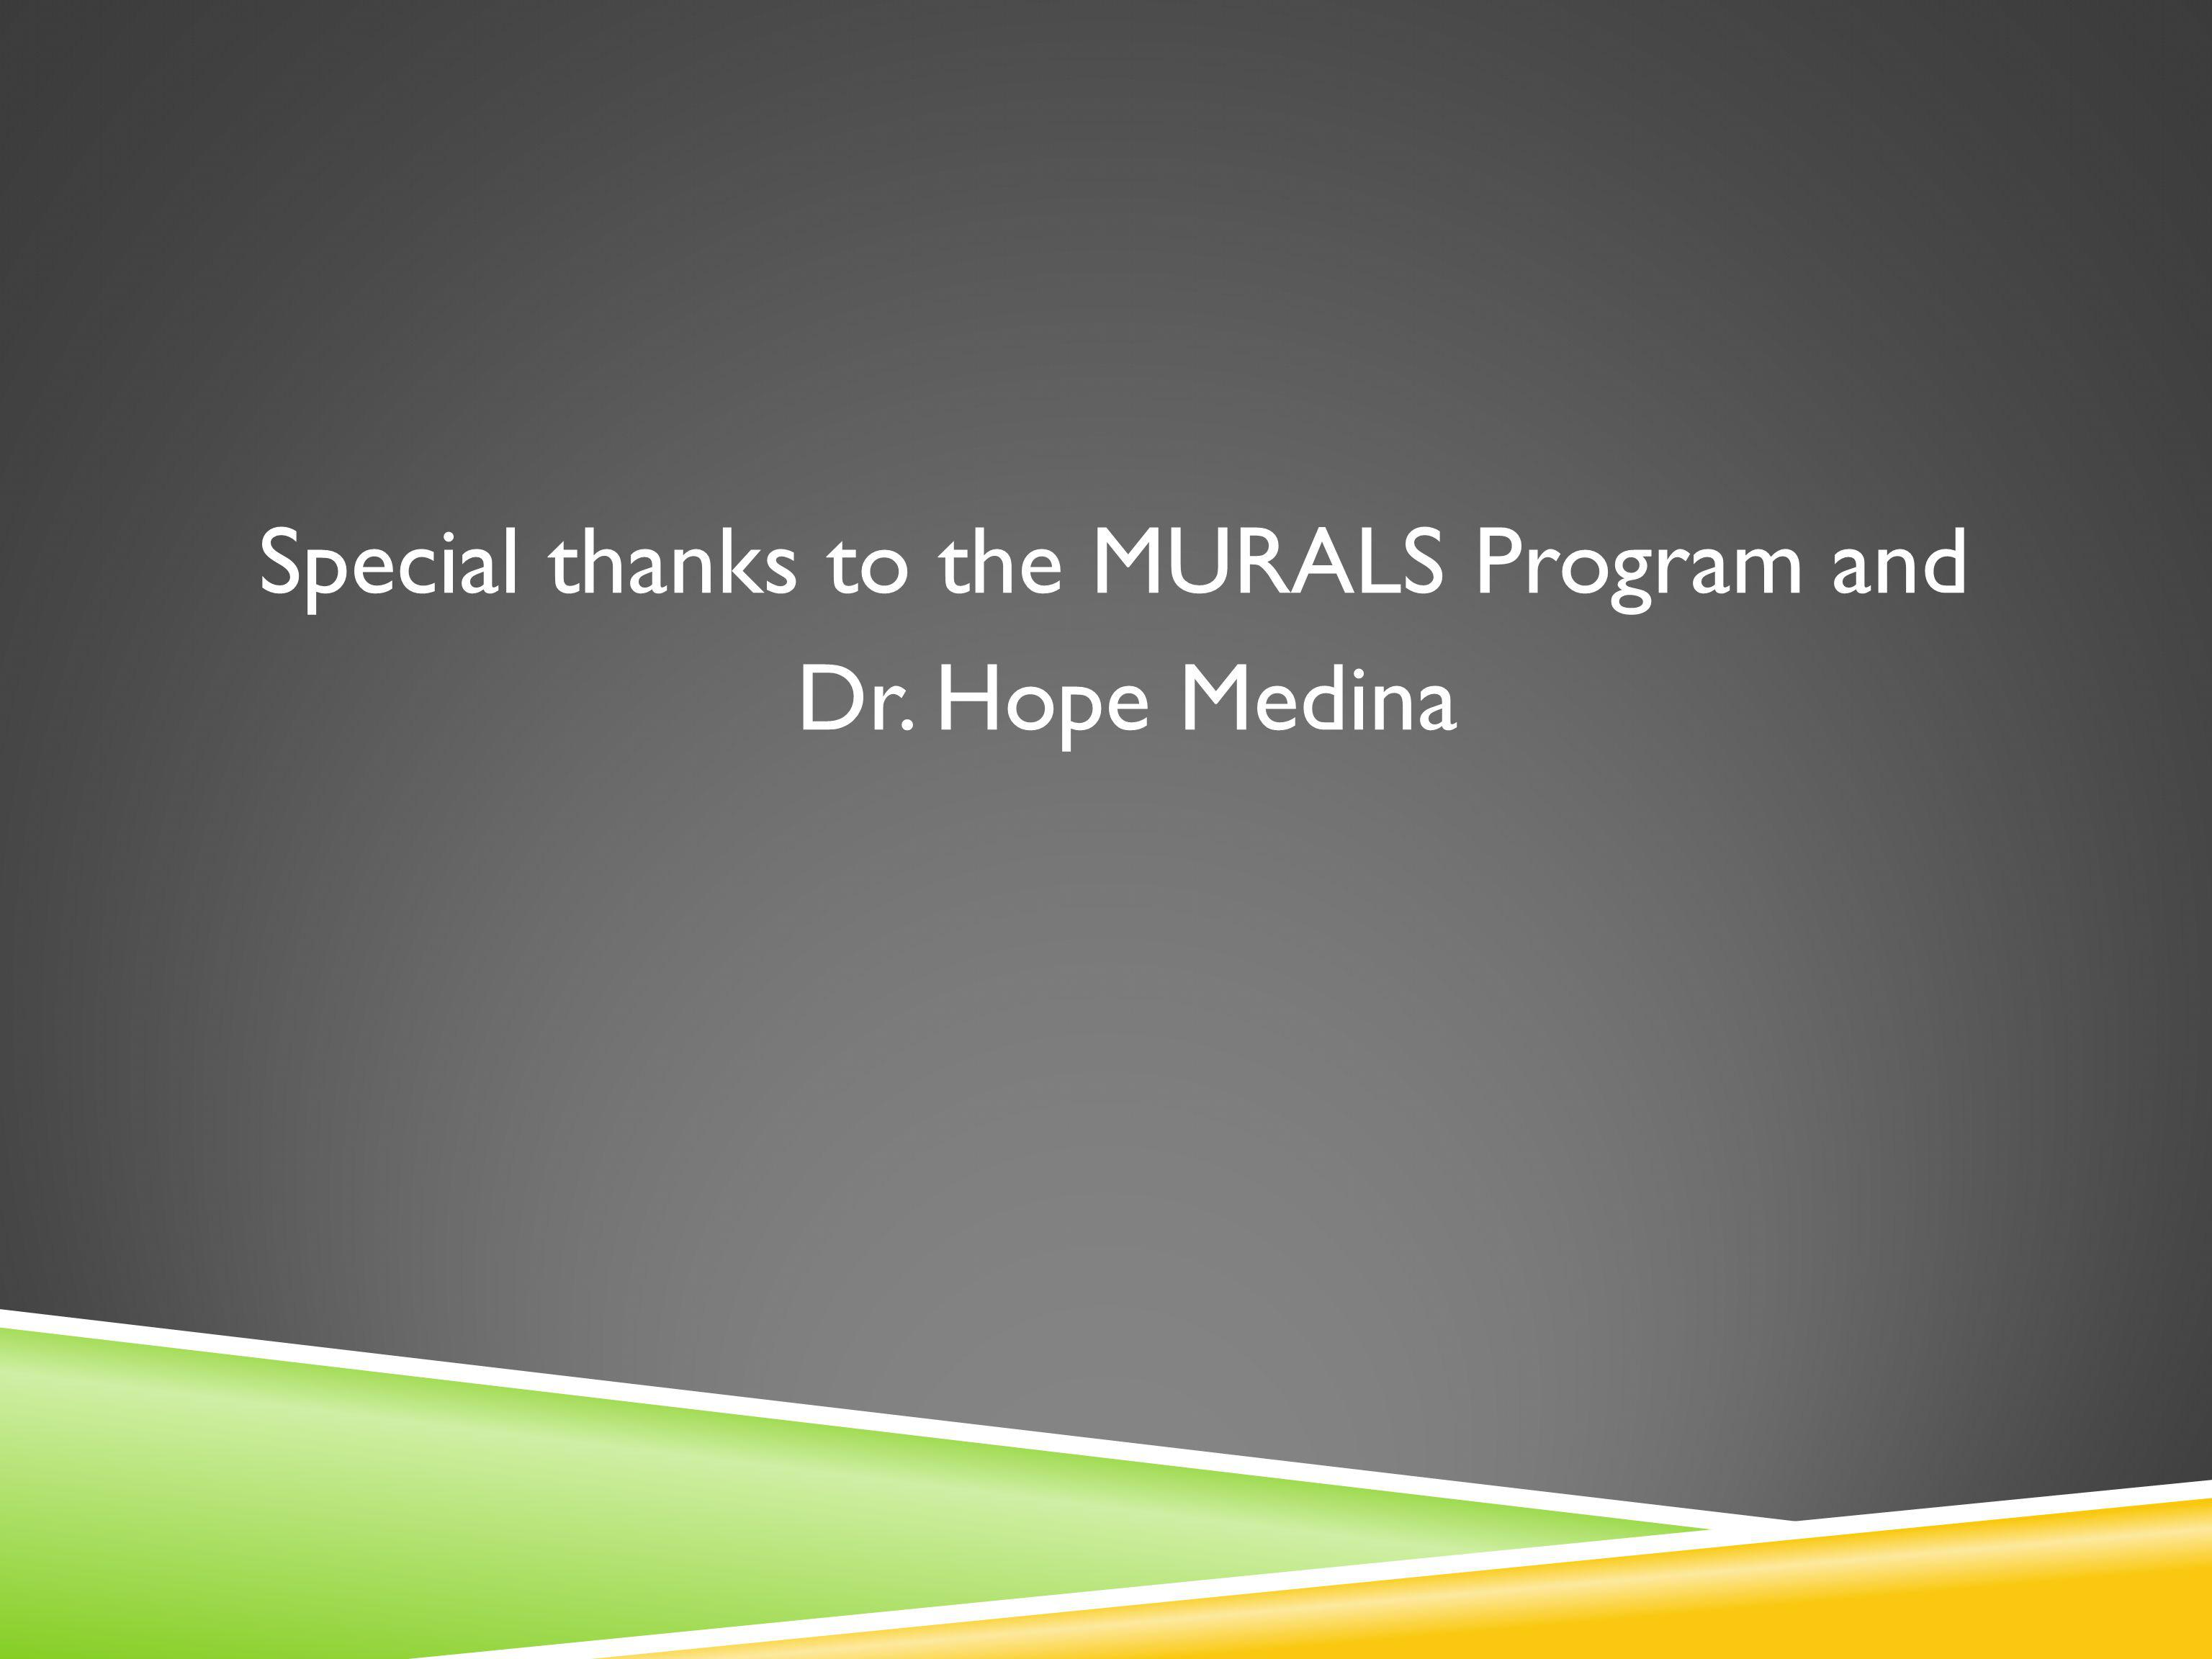 Special thanks to the MURALS Program and Dr. Hope Medina